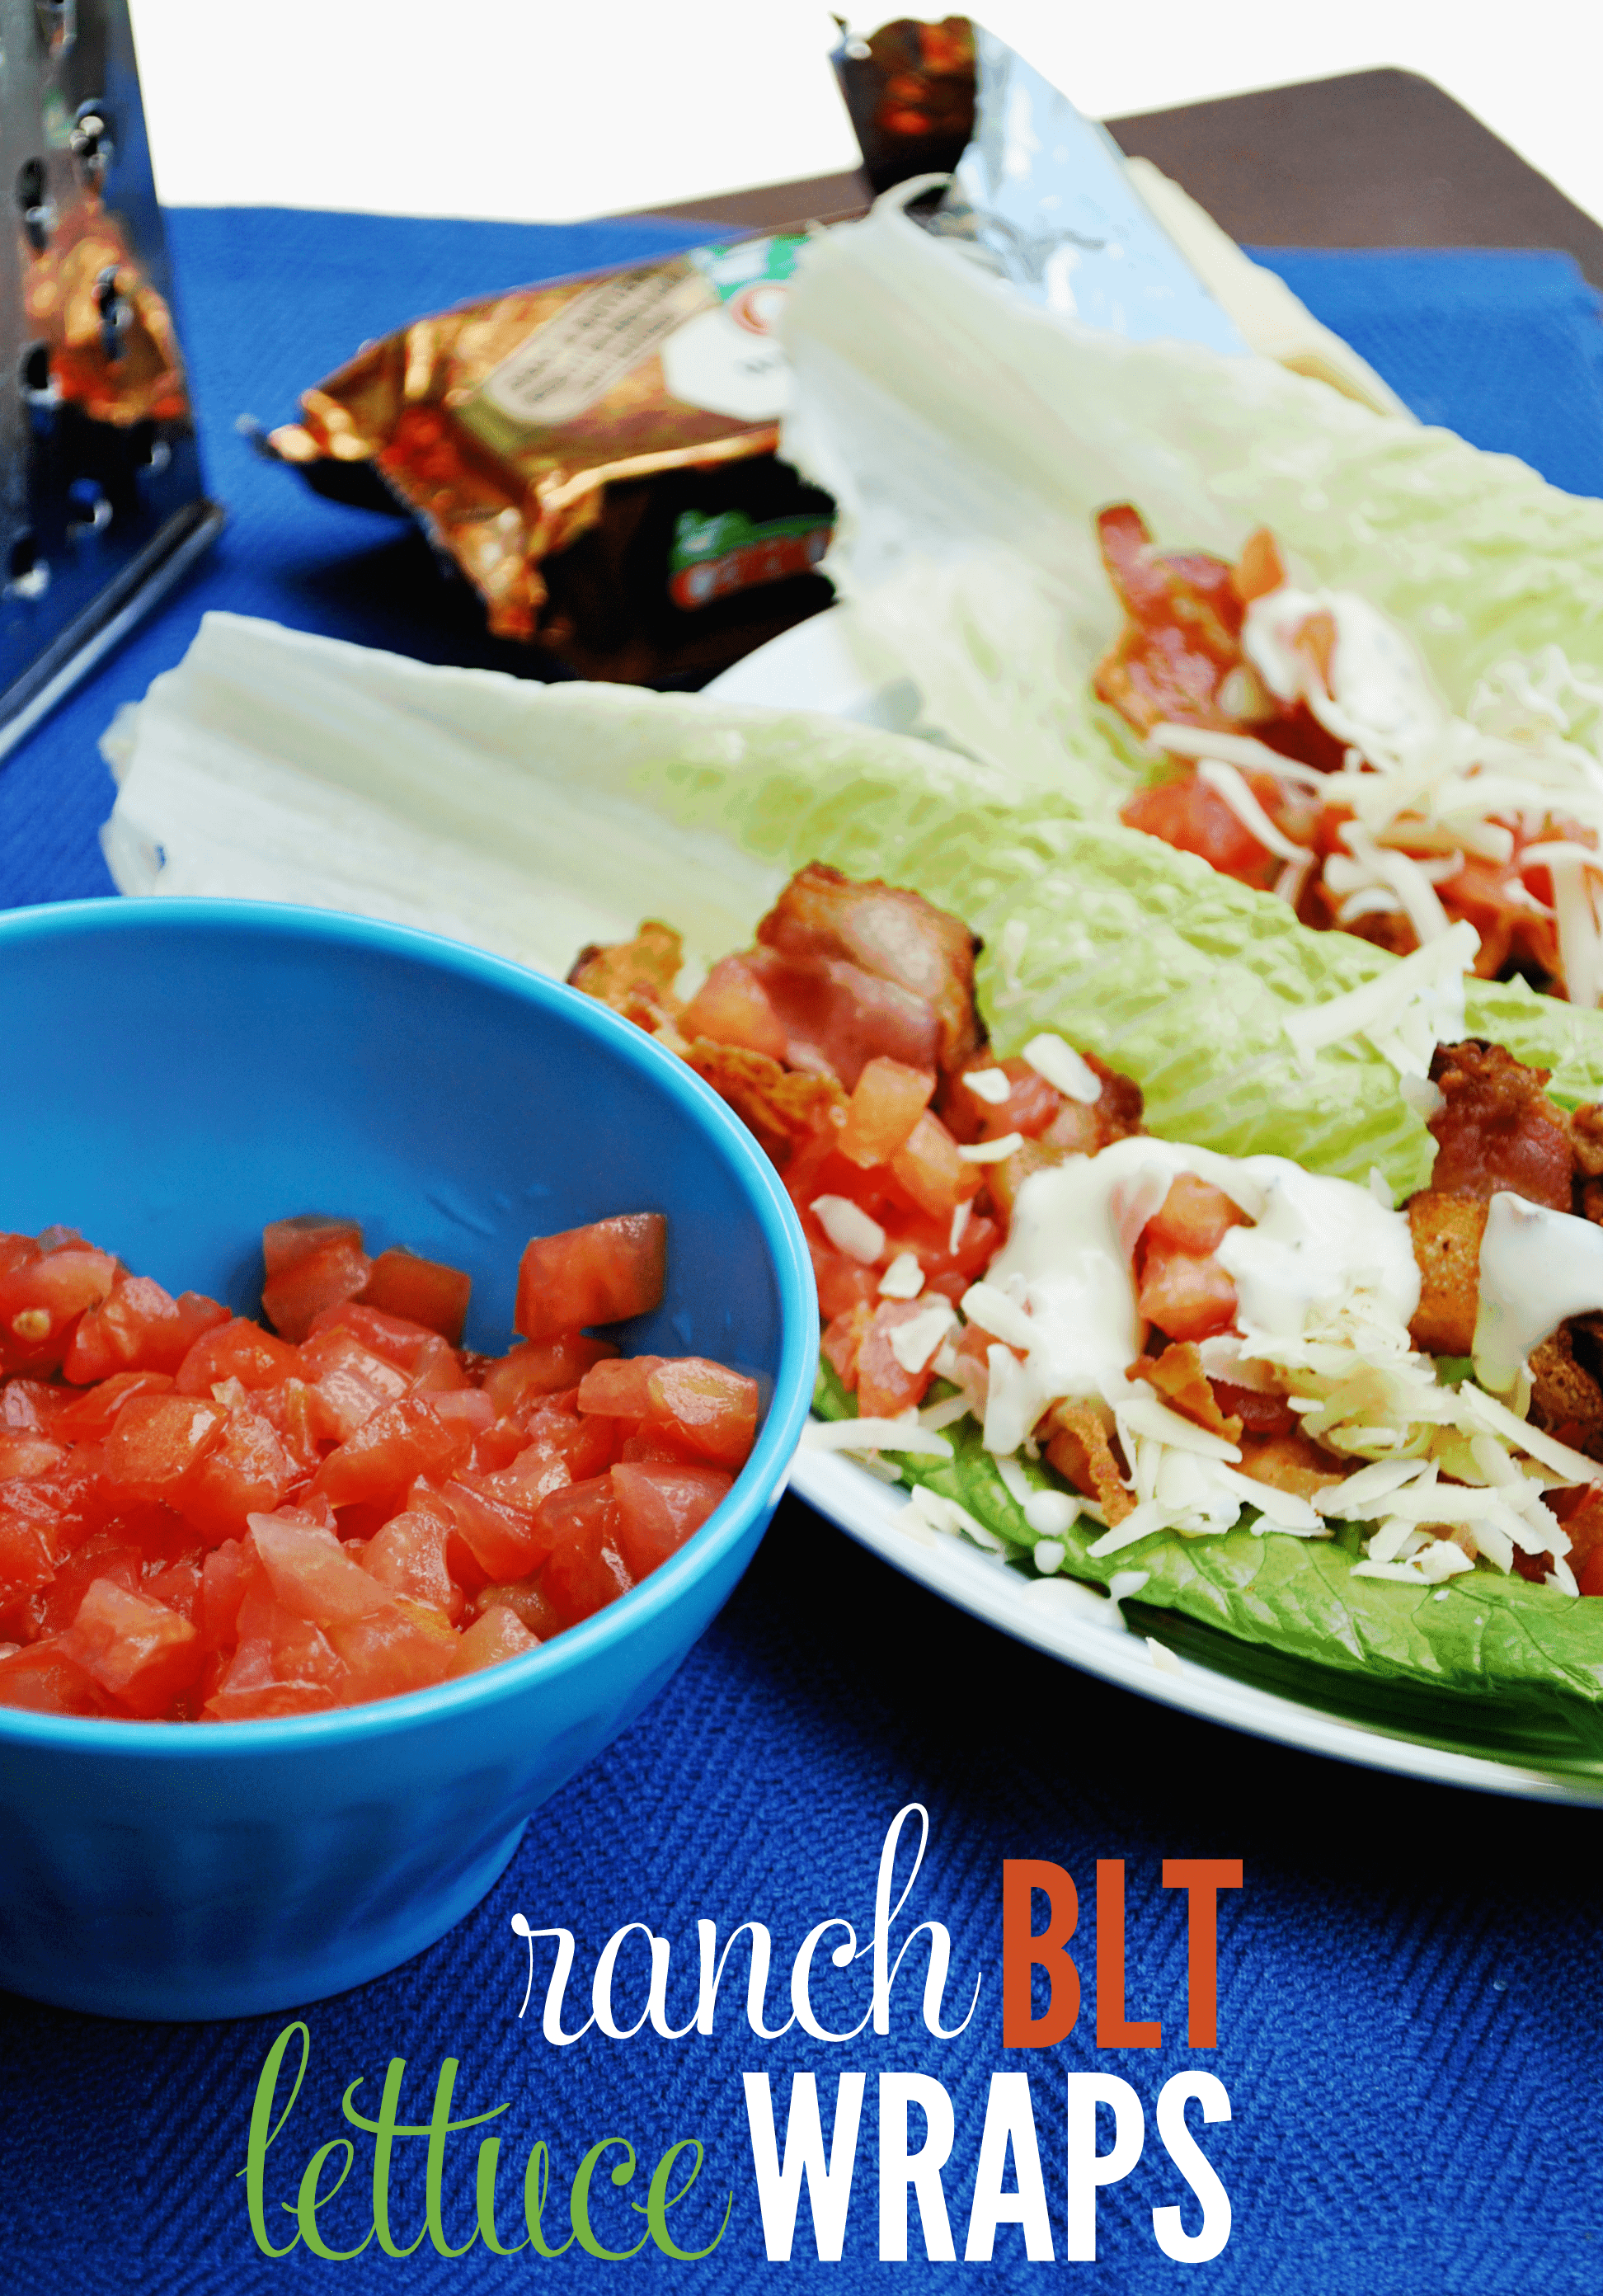 Ranch BLT Lettuce Wraps